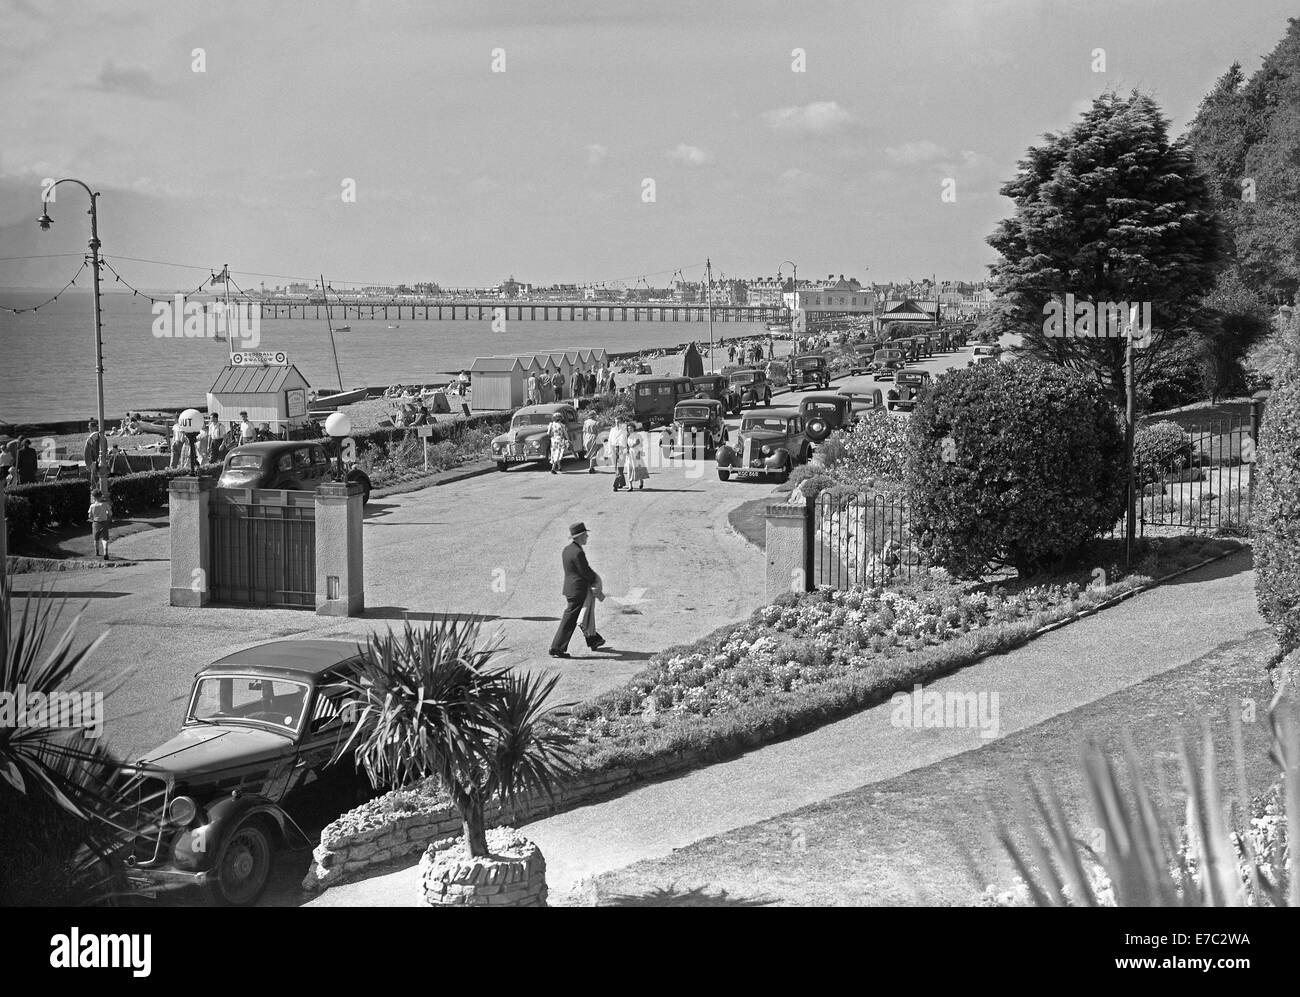 View south along the North Sea seafront at Felixstowe, Suffolk, England c.1950 - Stock Image